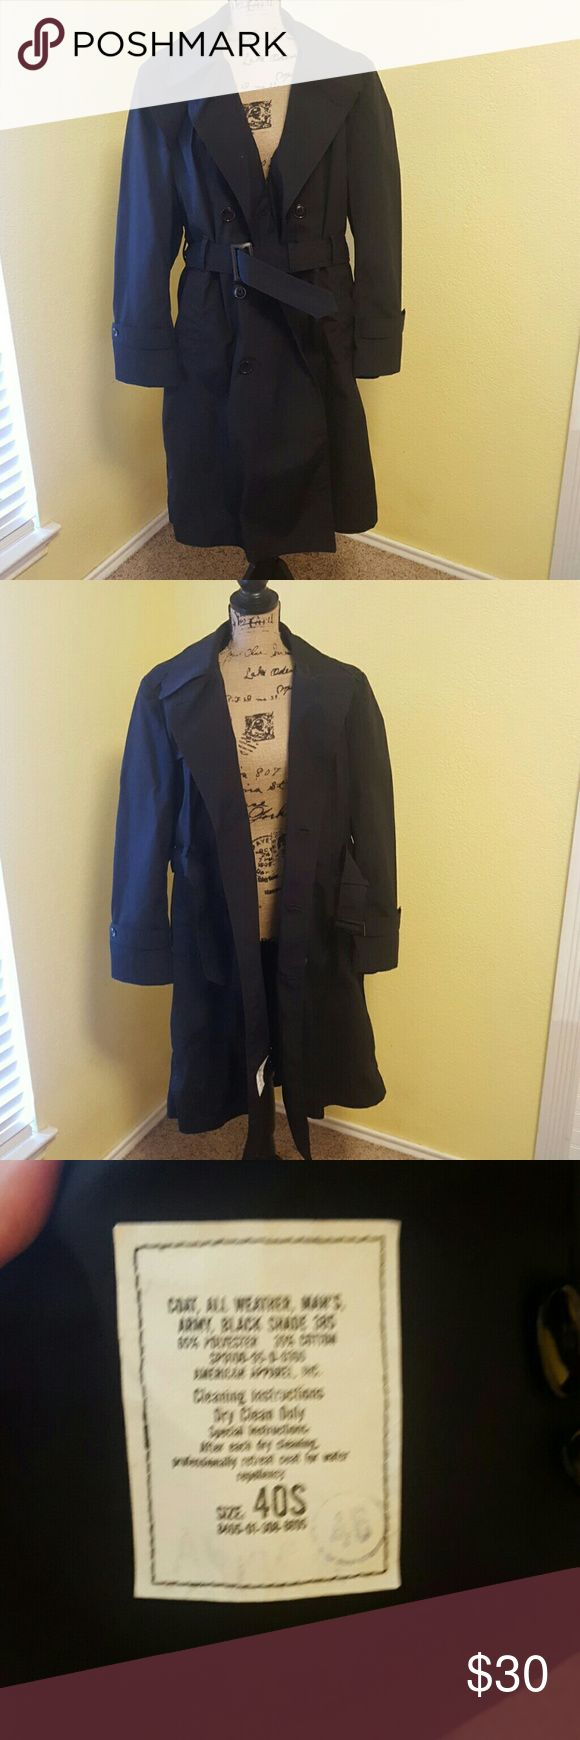 Black Trench  Coat All-weather men's army black coat size 40s, fits men in size medium fits women in size large. Excellent condition. US Army Jackets & Coats Trench Coats